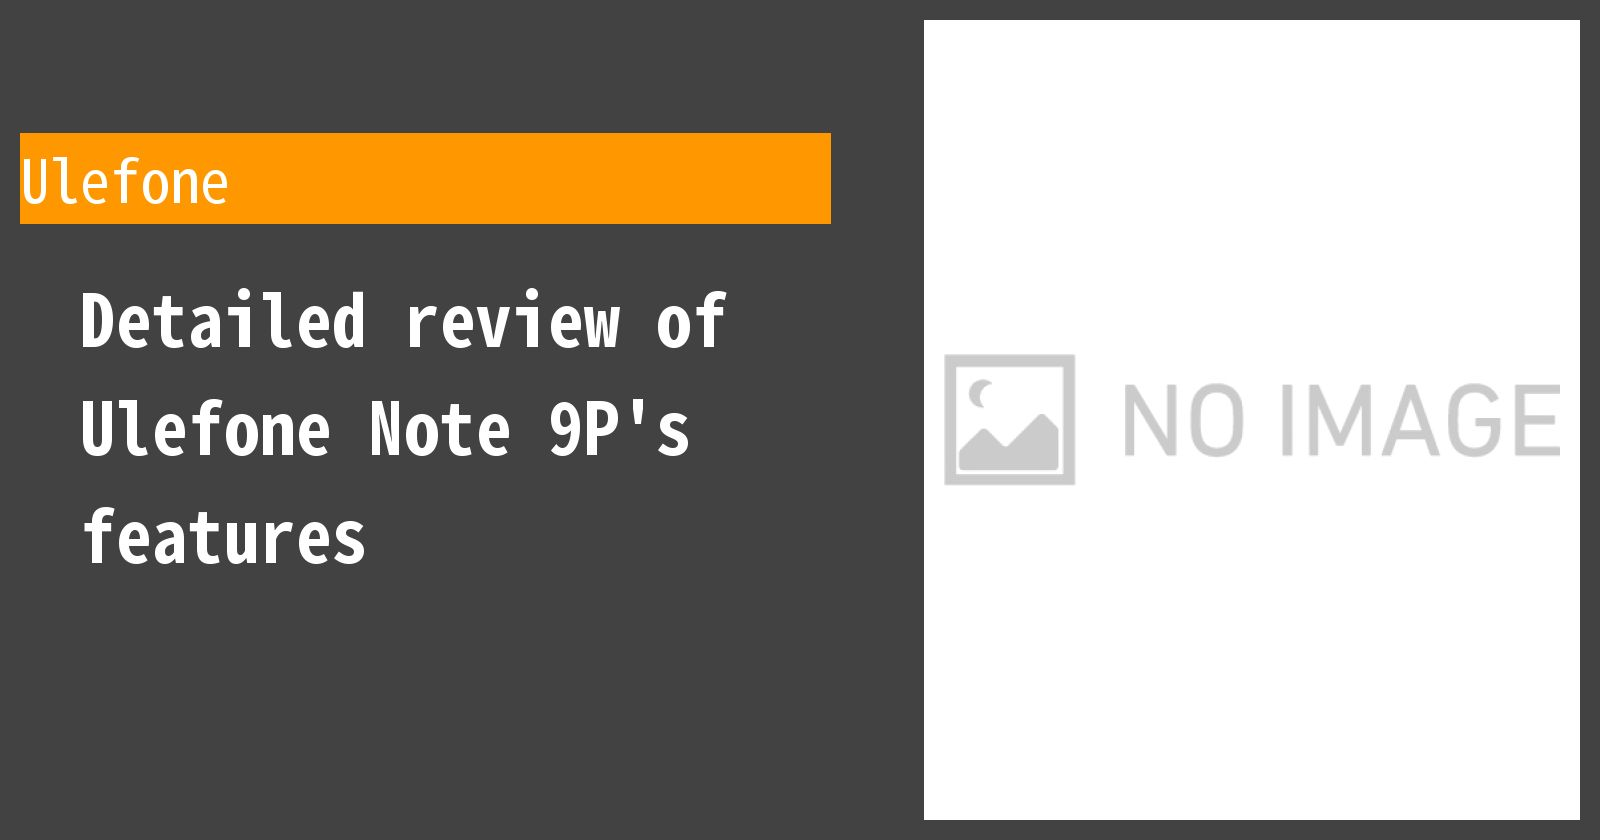 Detailed review of Ulefone Note 9P's features